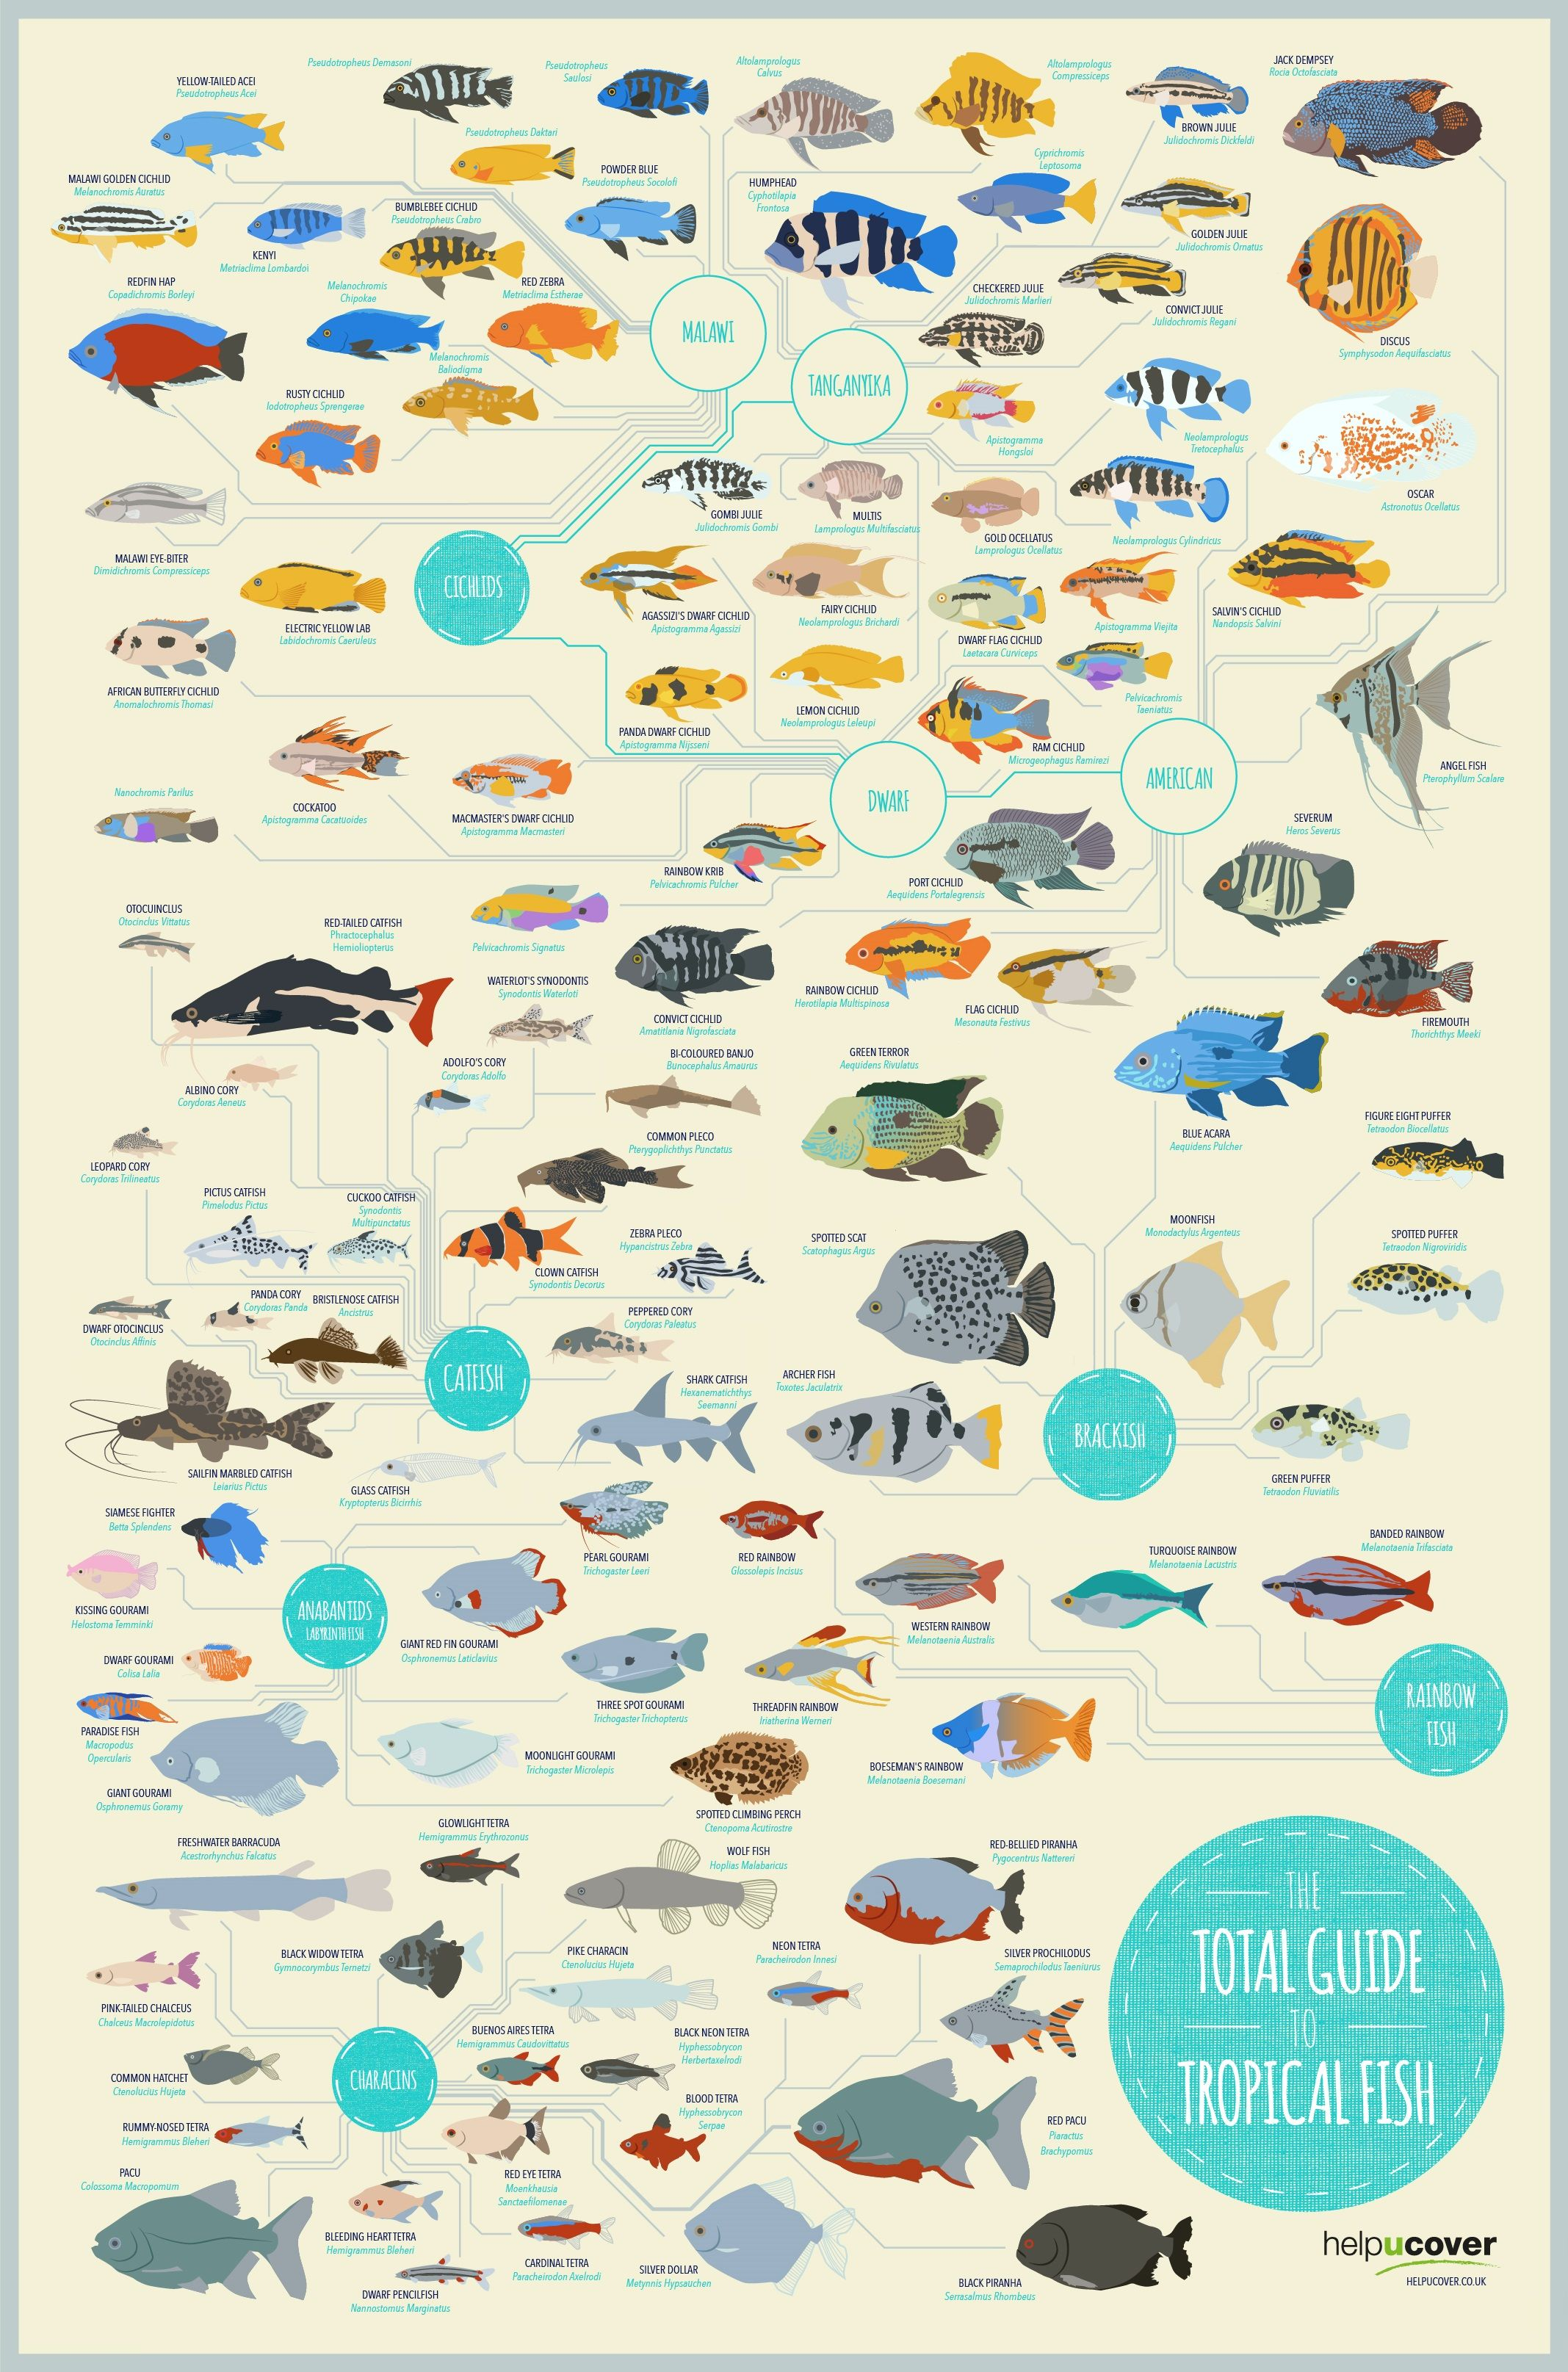 Freshwater aquarium fish guide - The Total Guide To Tropical Fish Infographic